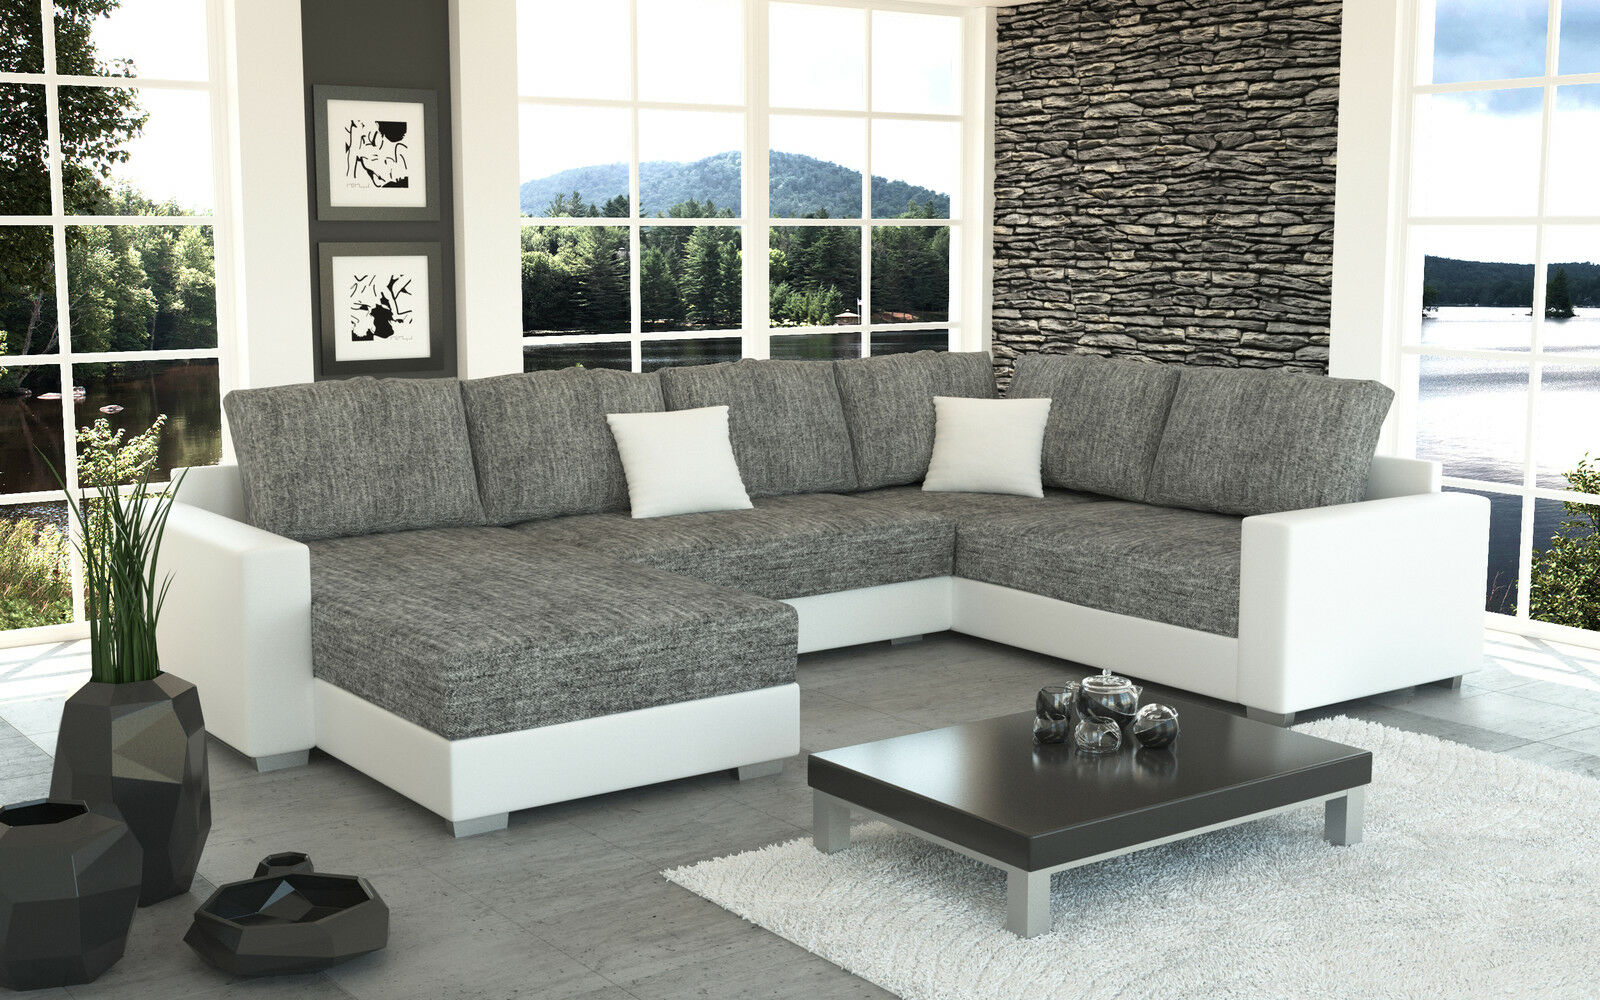 Couch garnitur ecksofa sofagarnitur sofa sty 4 u for Ecksofa garnitur